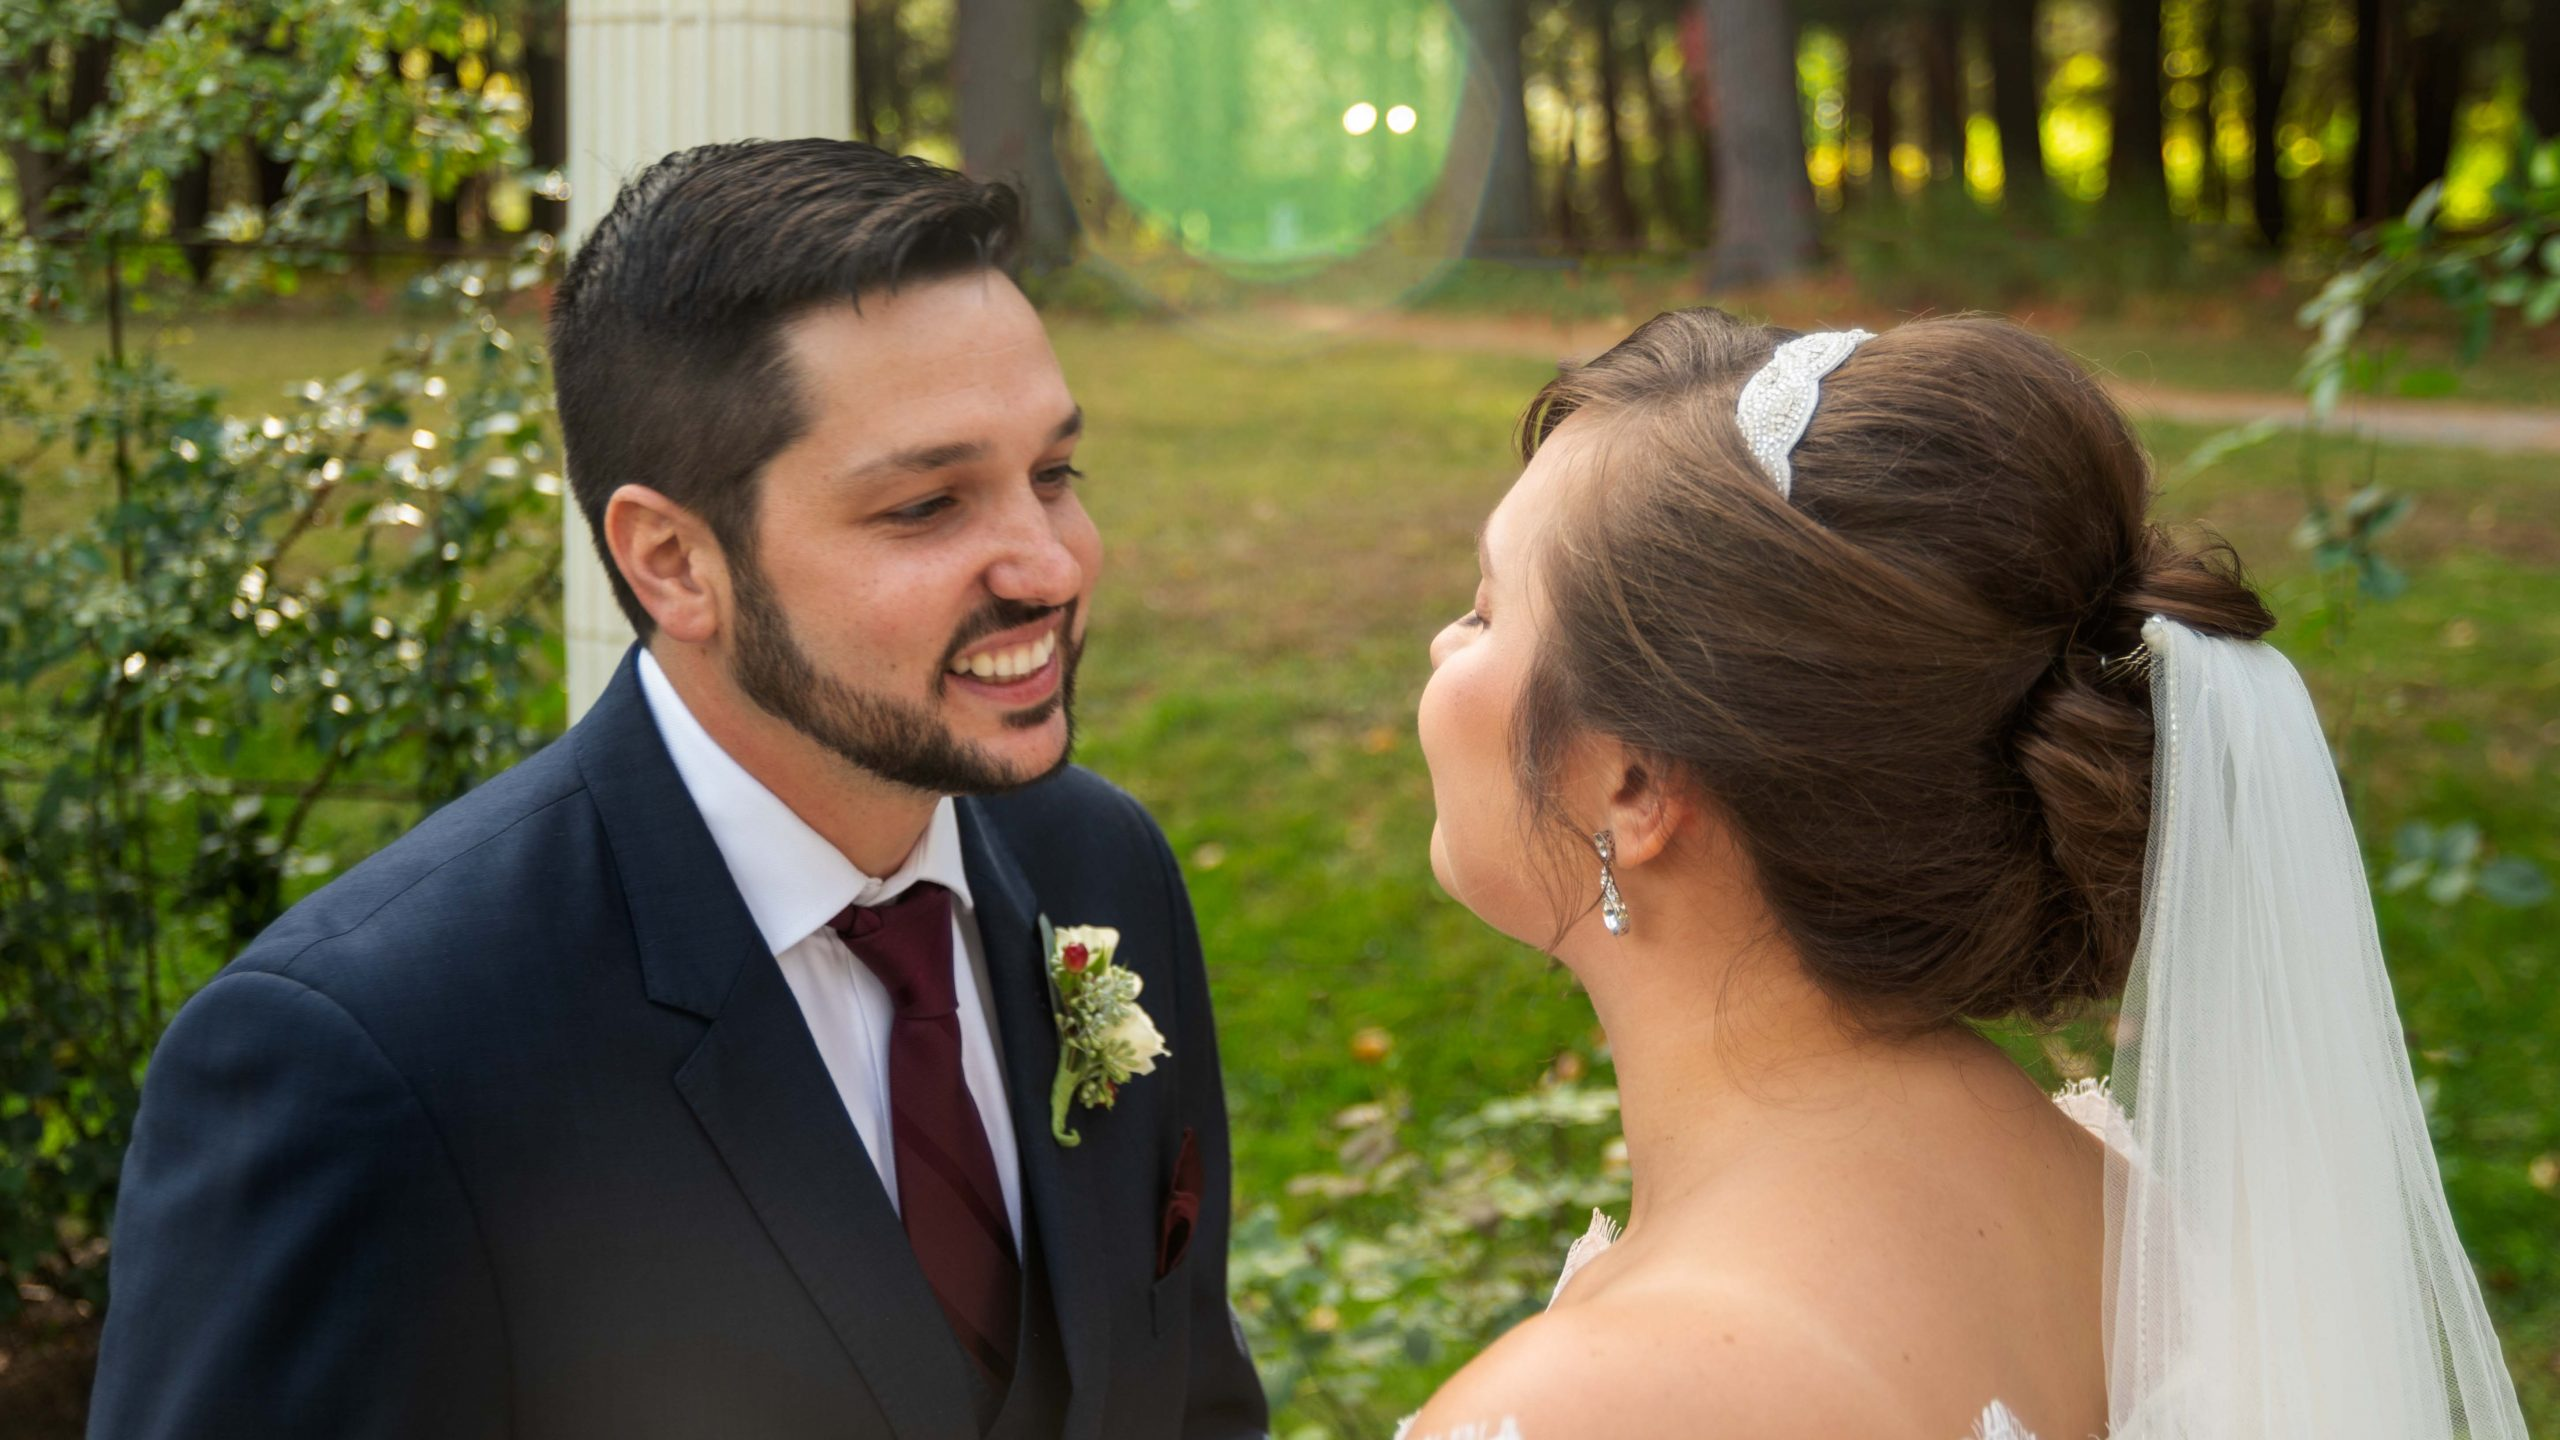 First Look: The Wedding Photos You Won't Want to Miss